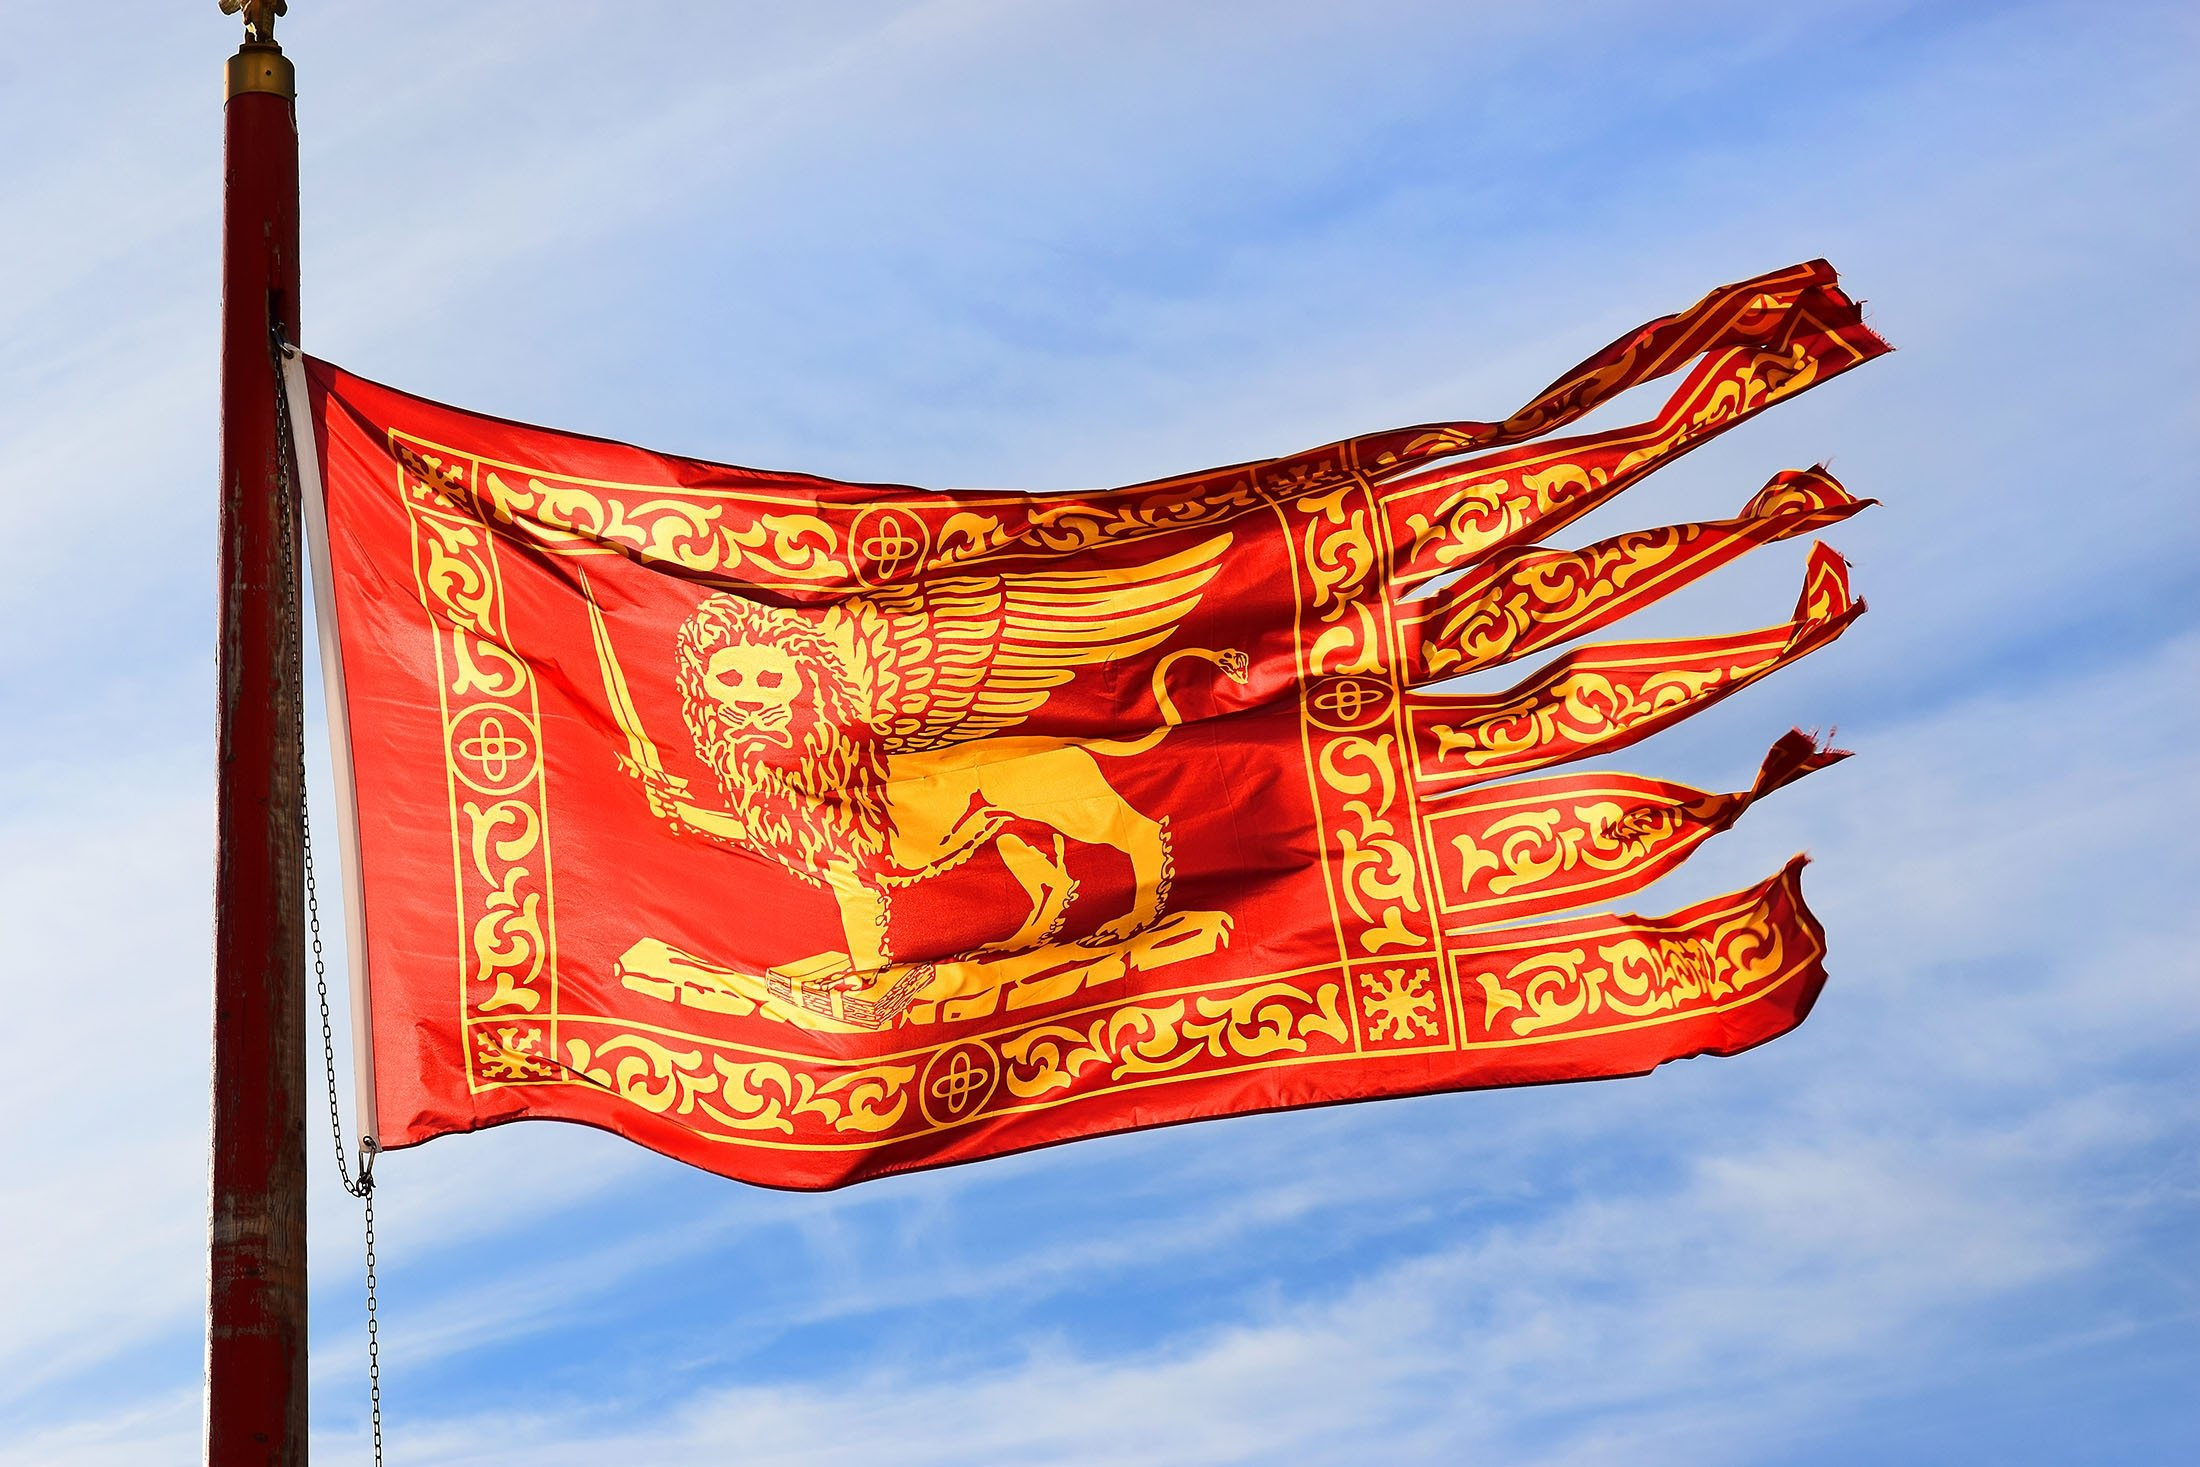 The Flag of the Republic of Venice, commonly known as the Standard of Saint Mark due to the Lion of Saint Mark on the flag, waves in the wind. (Shutterstock Photo)